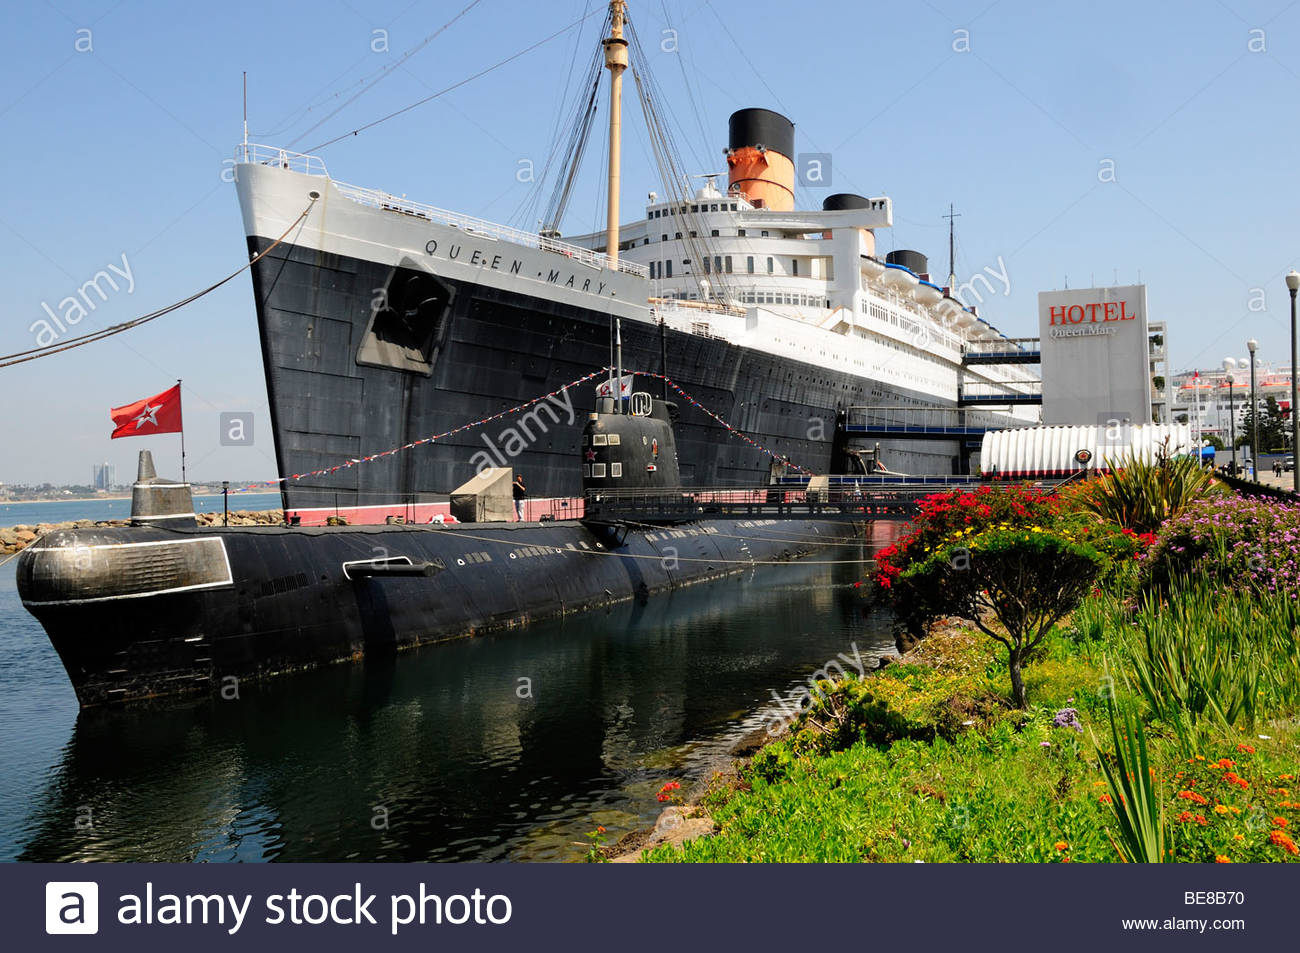 Richard J. Riordan Central Library Los Angeles, USA, California, Los Angeles, Queen Mary ship Hotel and Scorpion ...